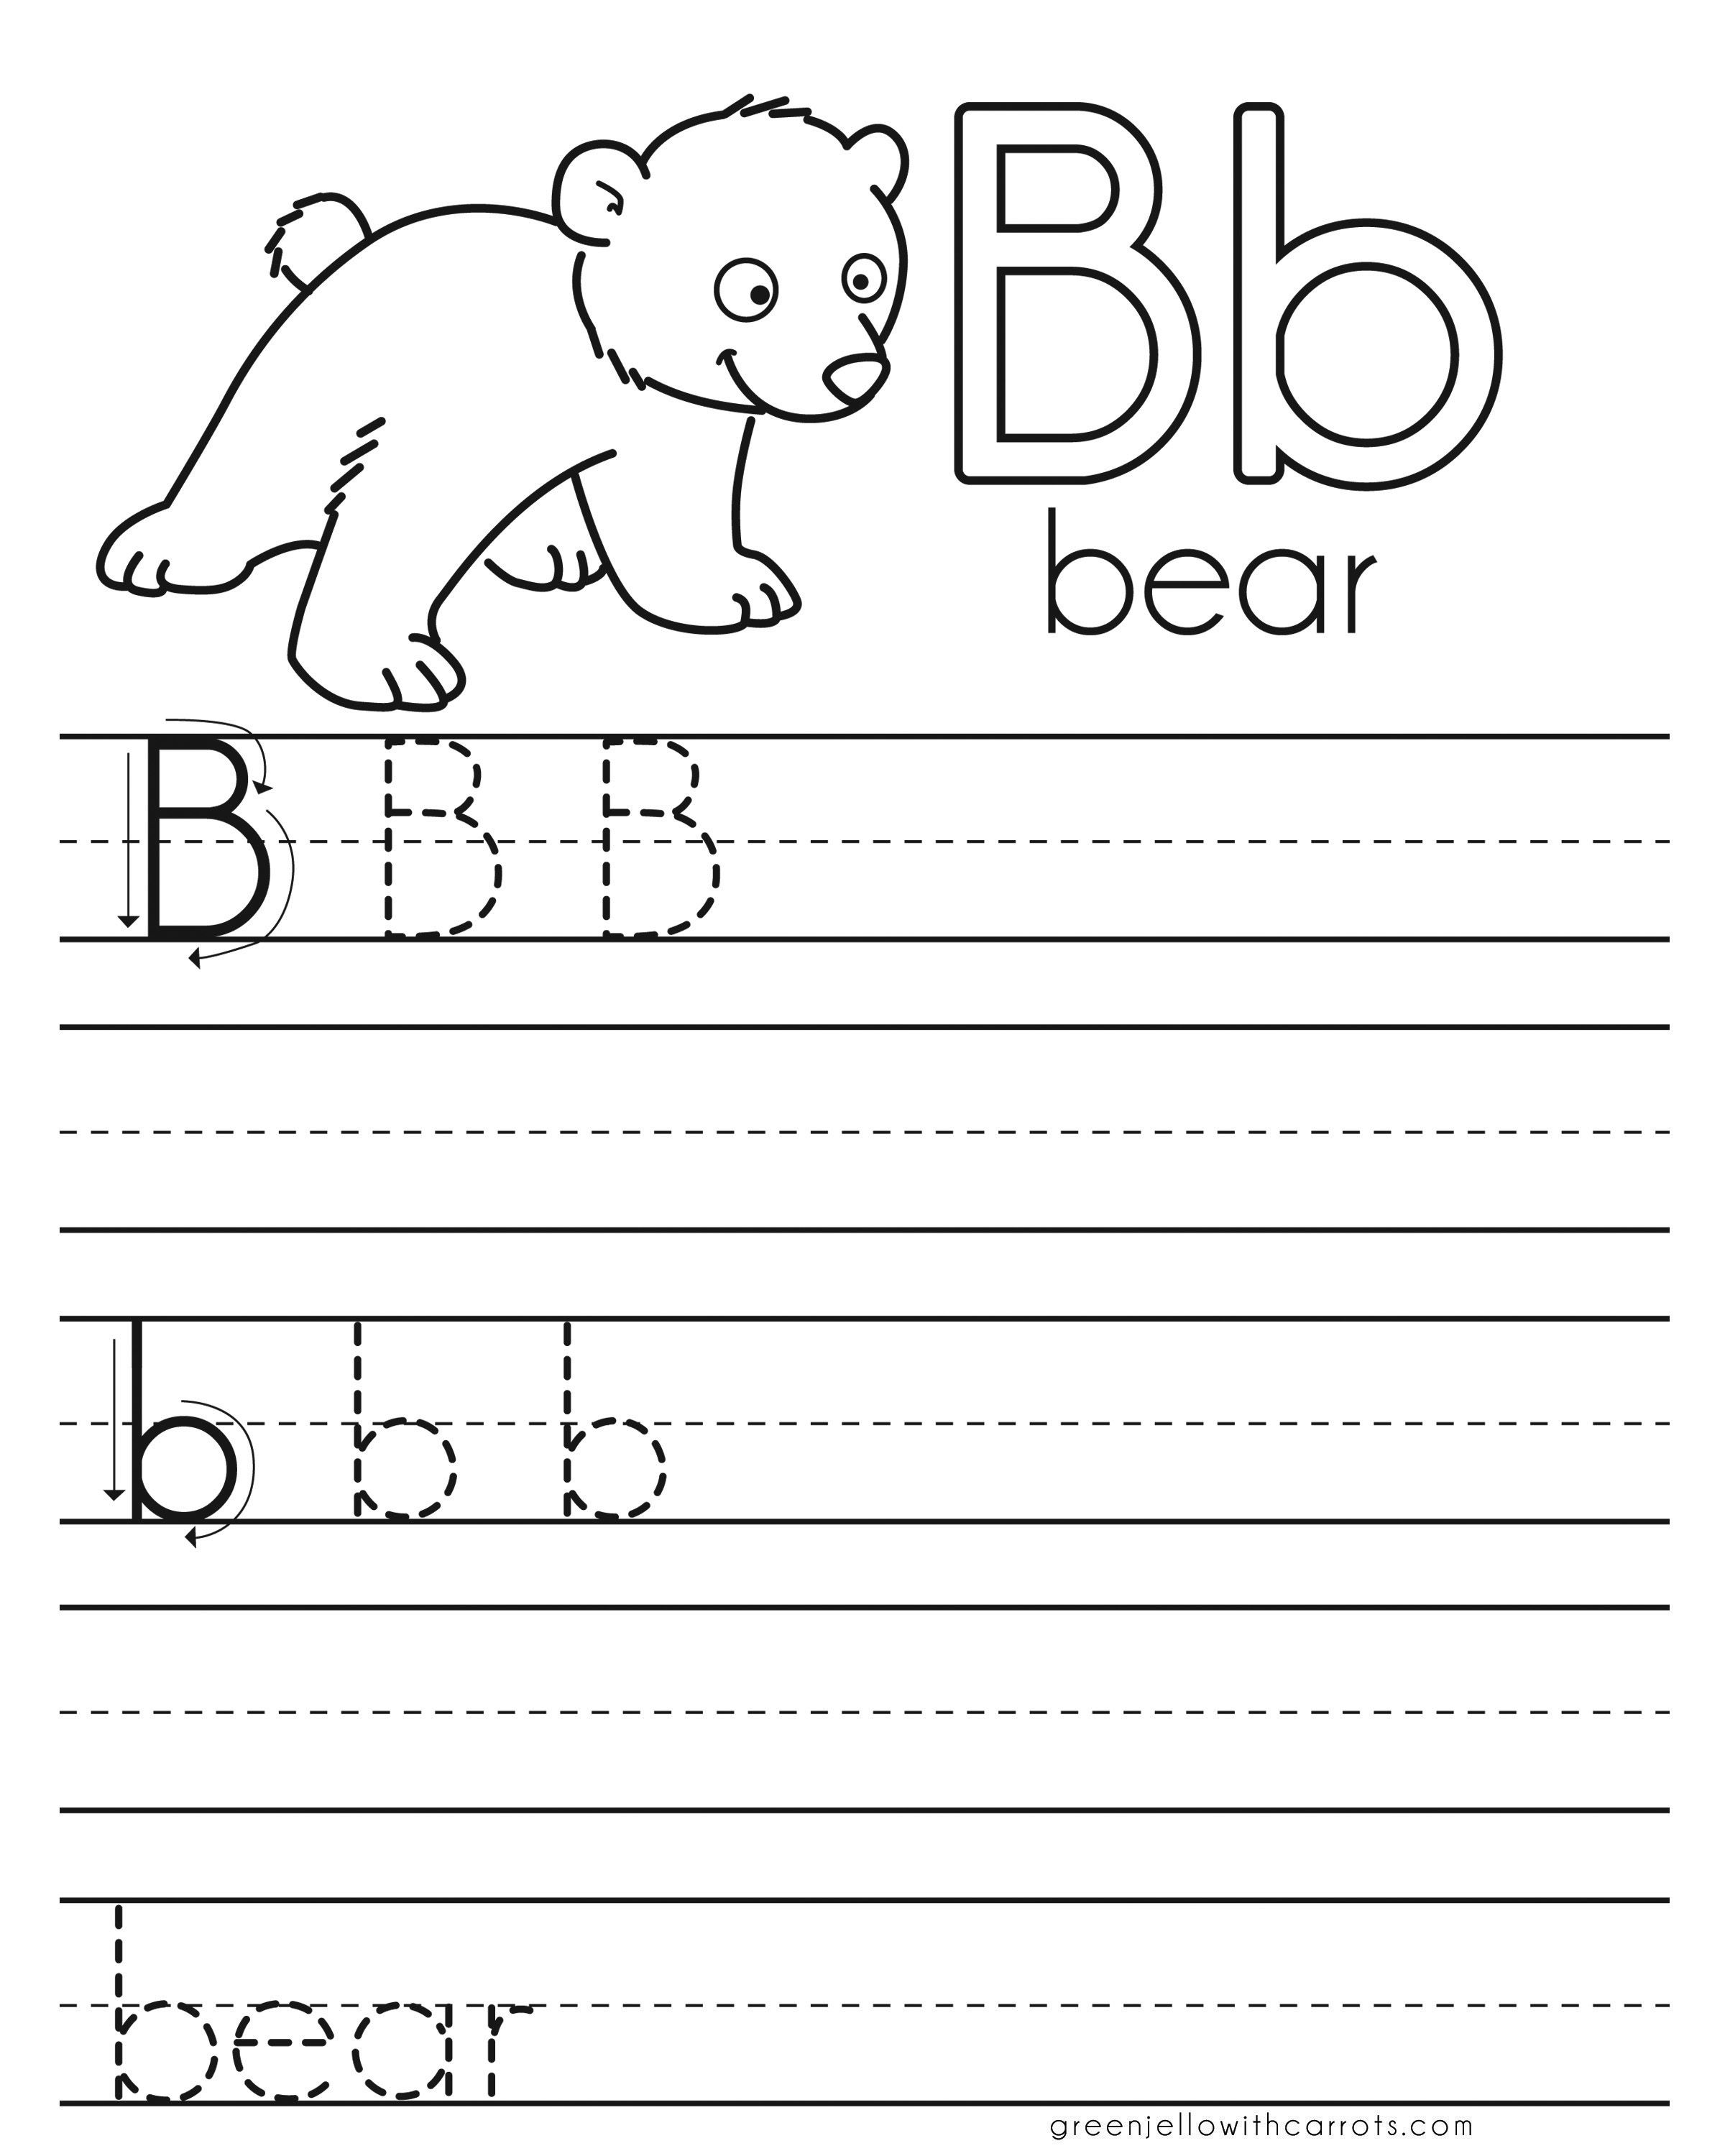 Letter Practice B Worksheets Writing Practice Letter Writing Practice Alphabet Writing Practice